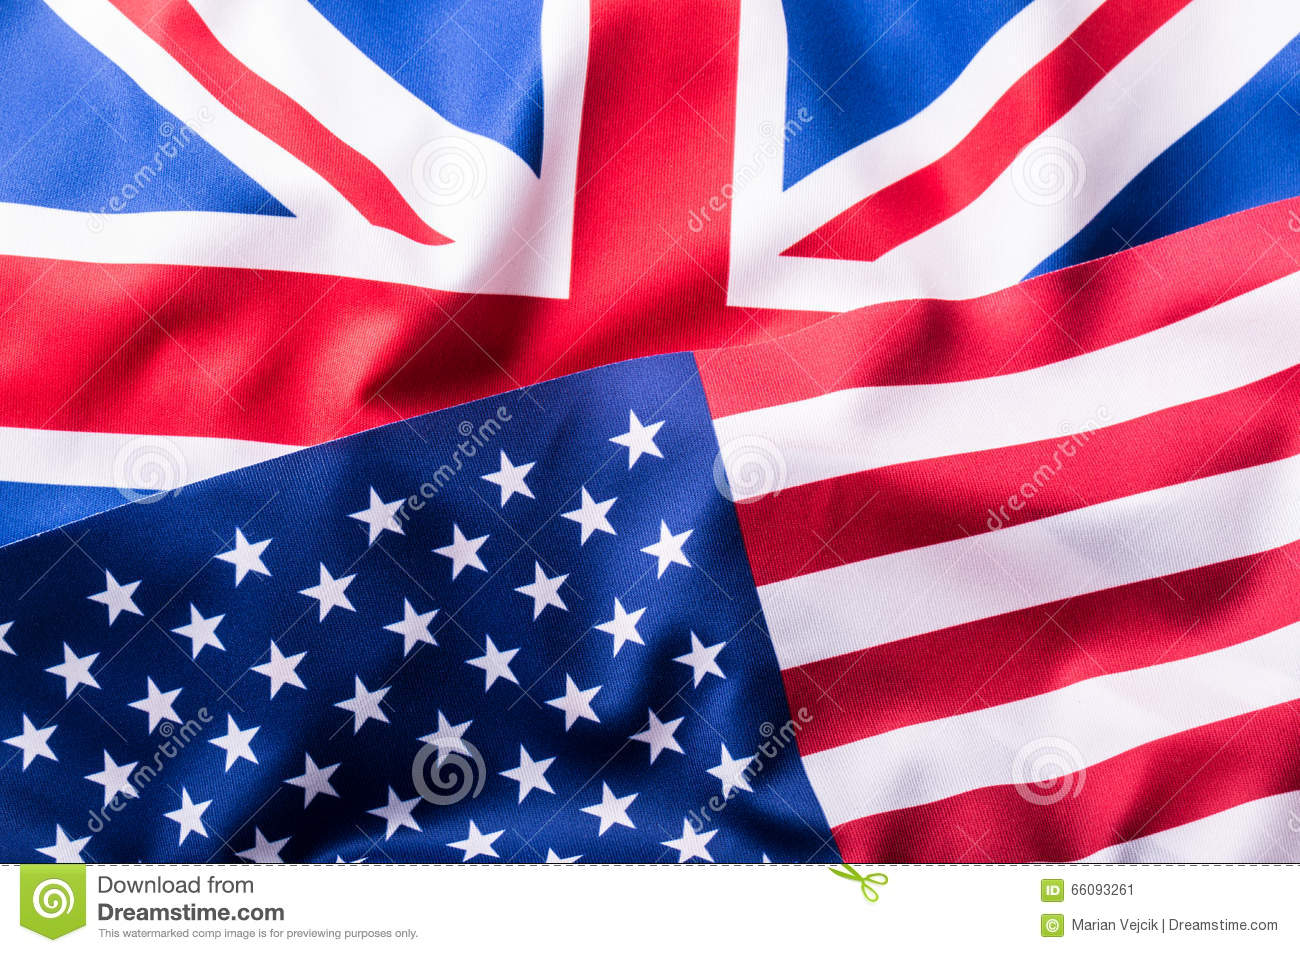 Mixed Flags of the USA and the UK. Union Jack flag